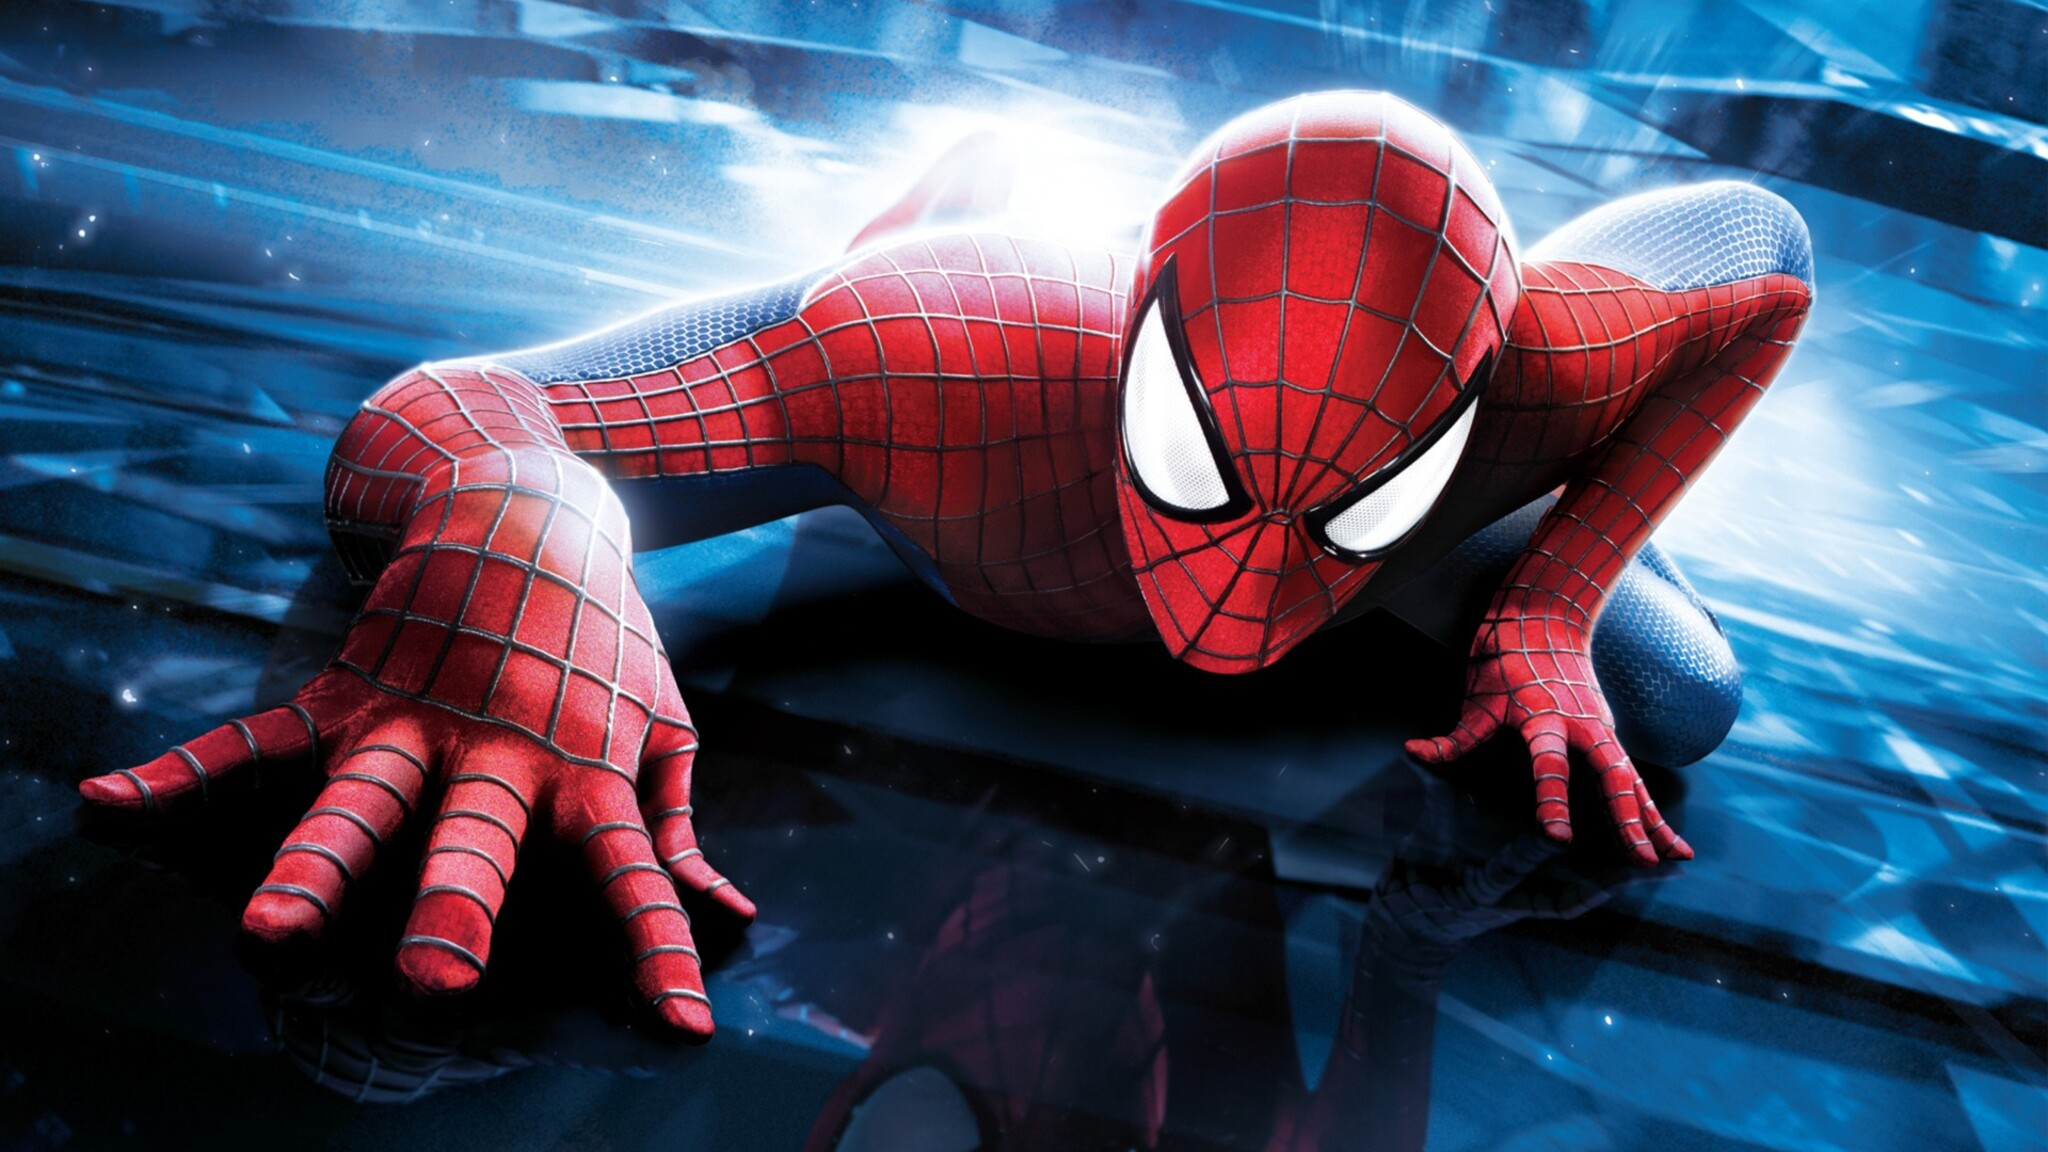 2048x1152 spiderman 2048x1152 resolution hd 4k wallpapers - Images spiderman ...